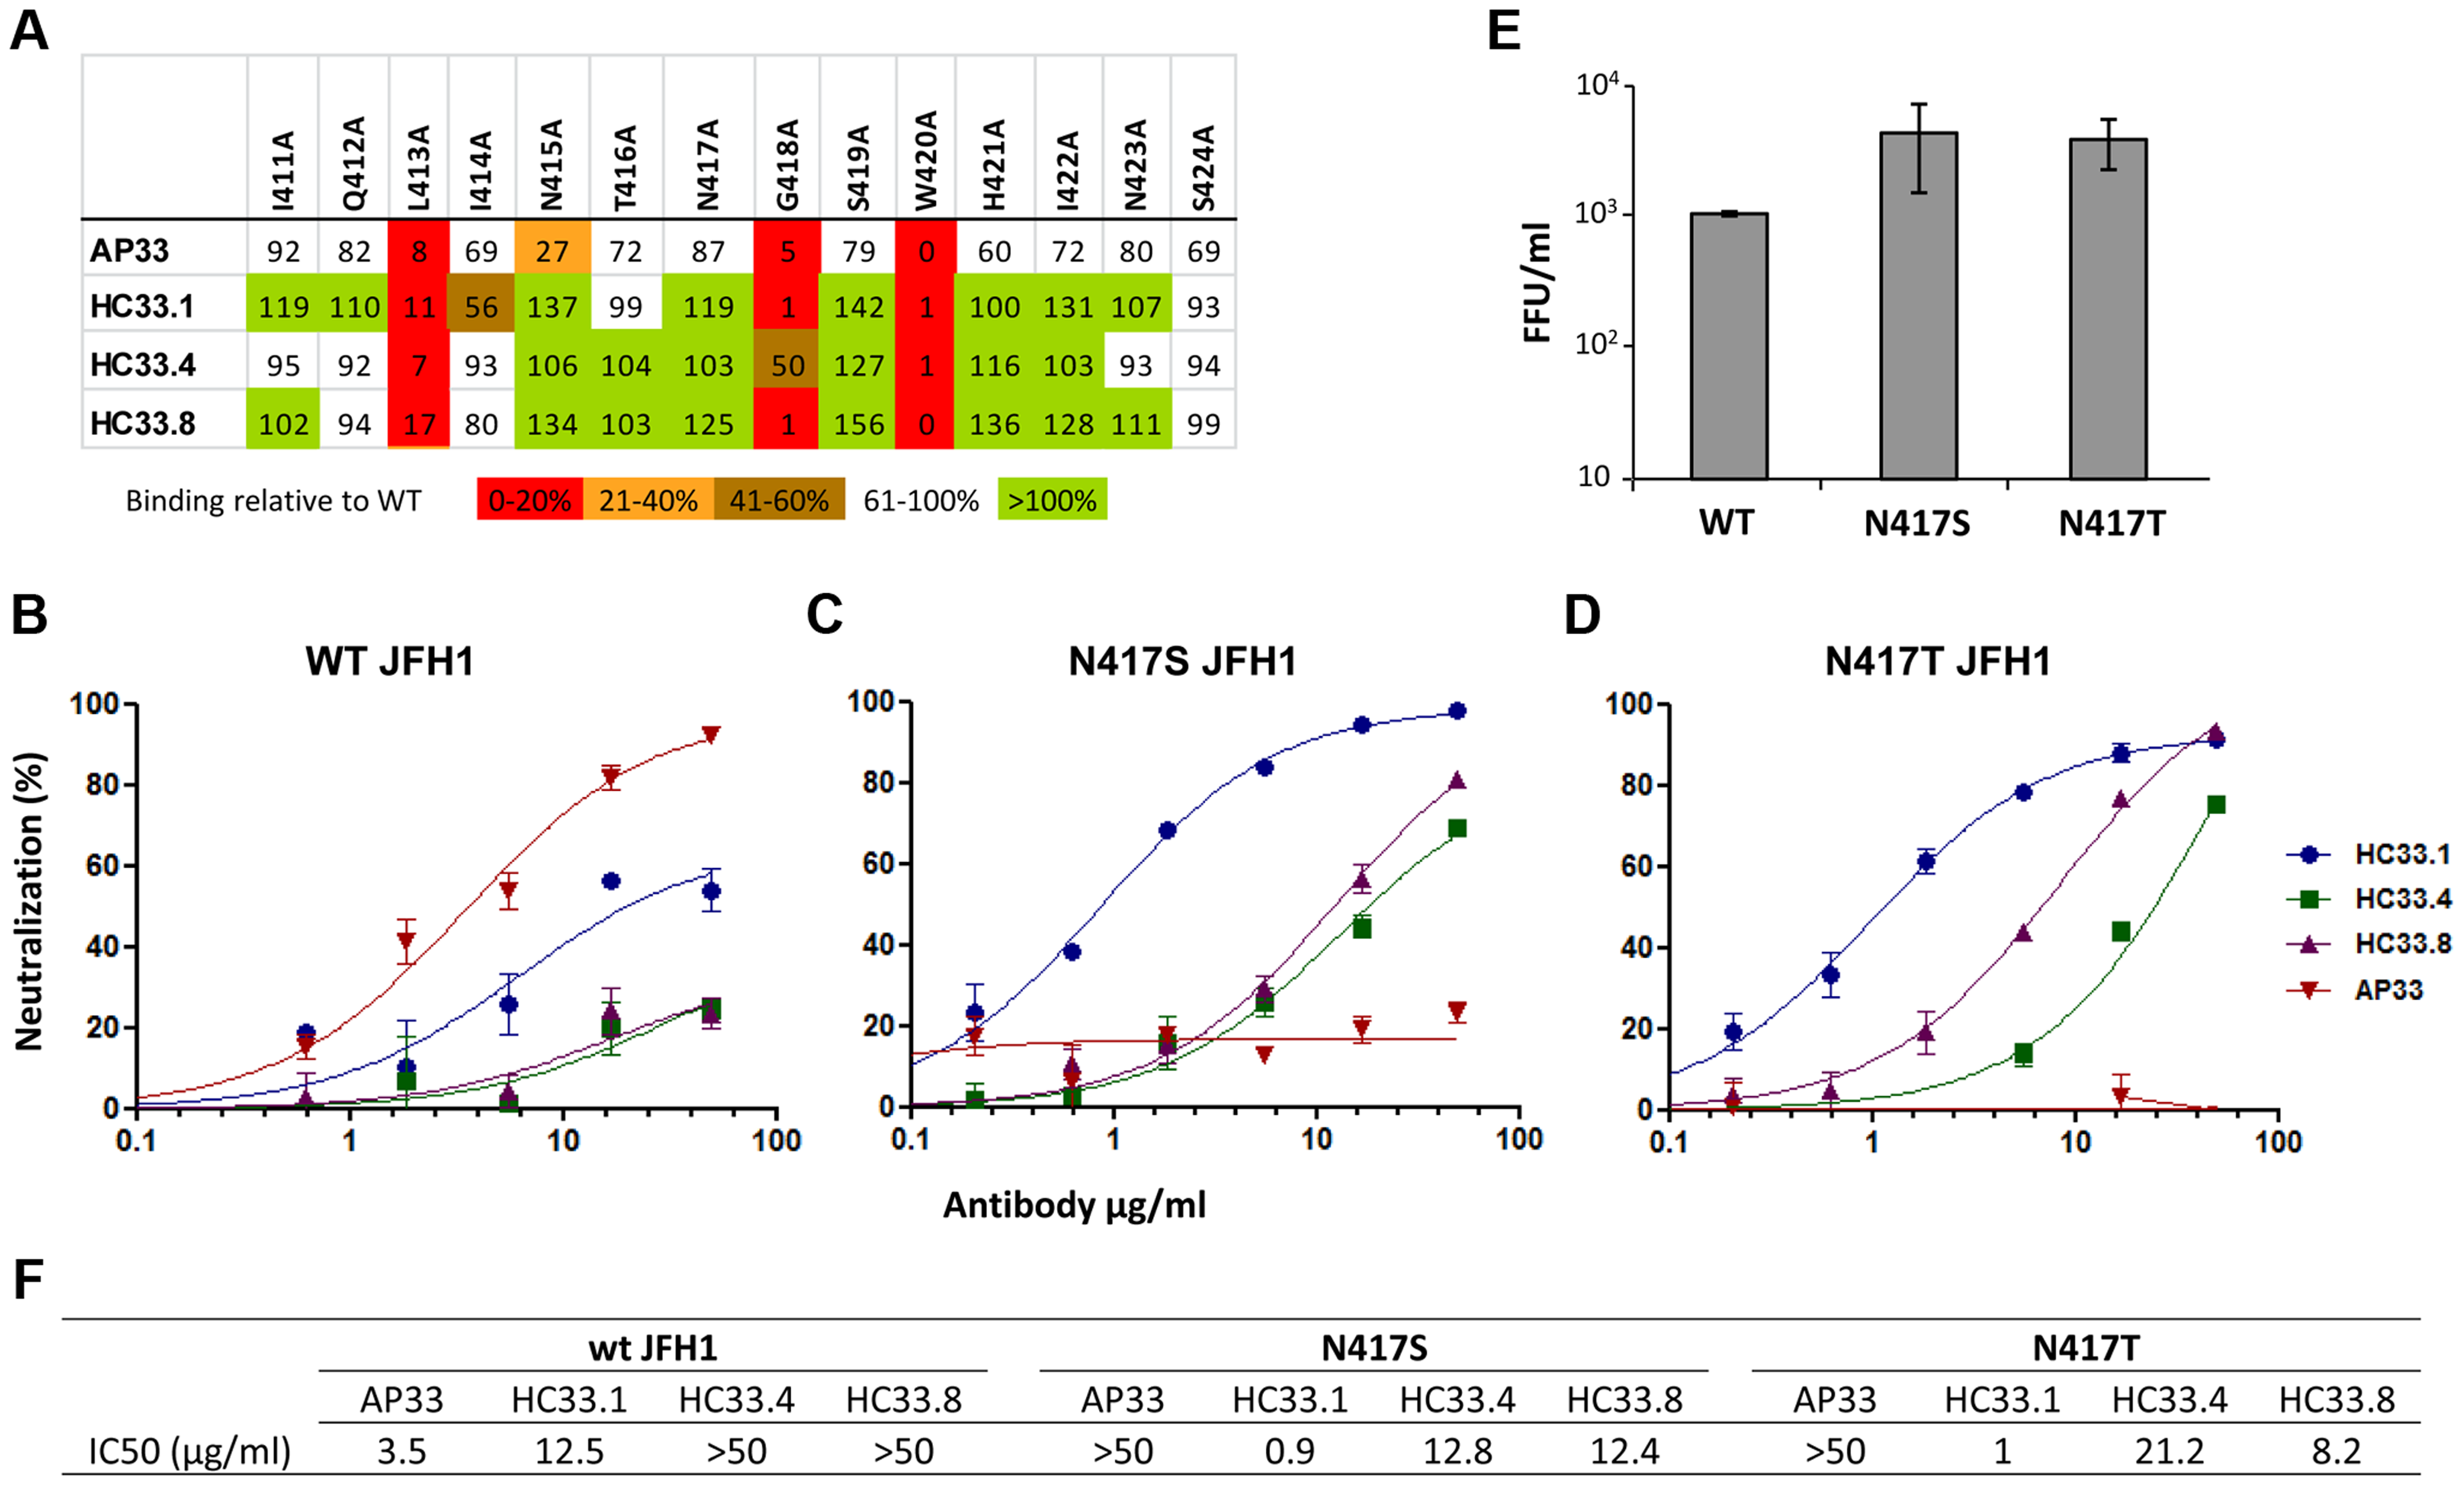 Human and mouse antibodies against amino acid 412–423 have different neutralization profiles.